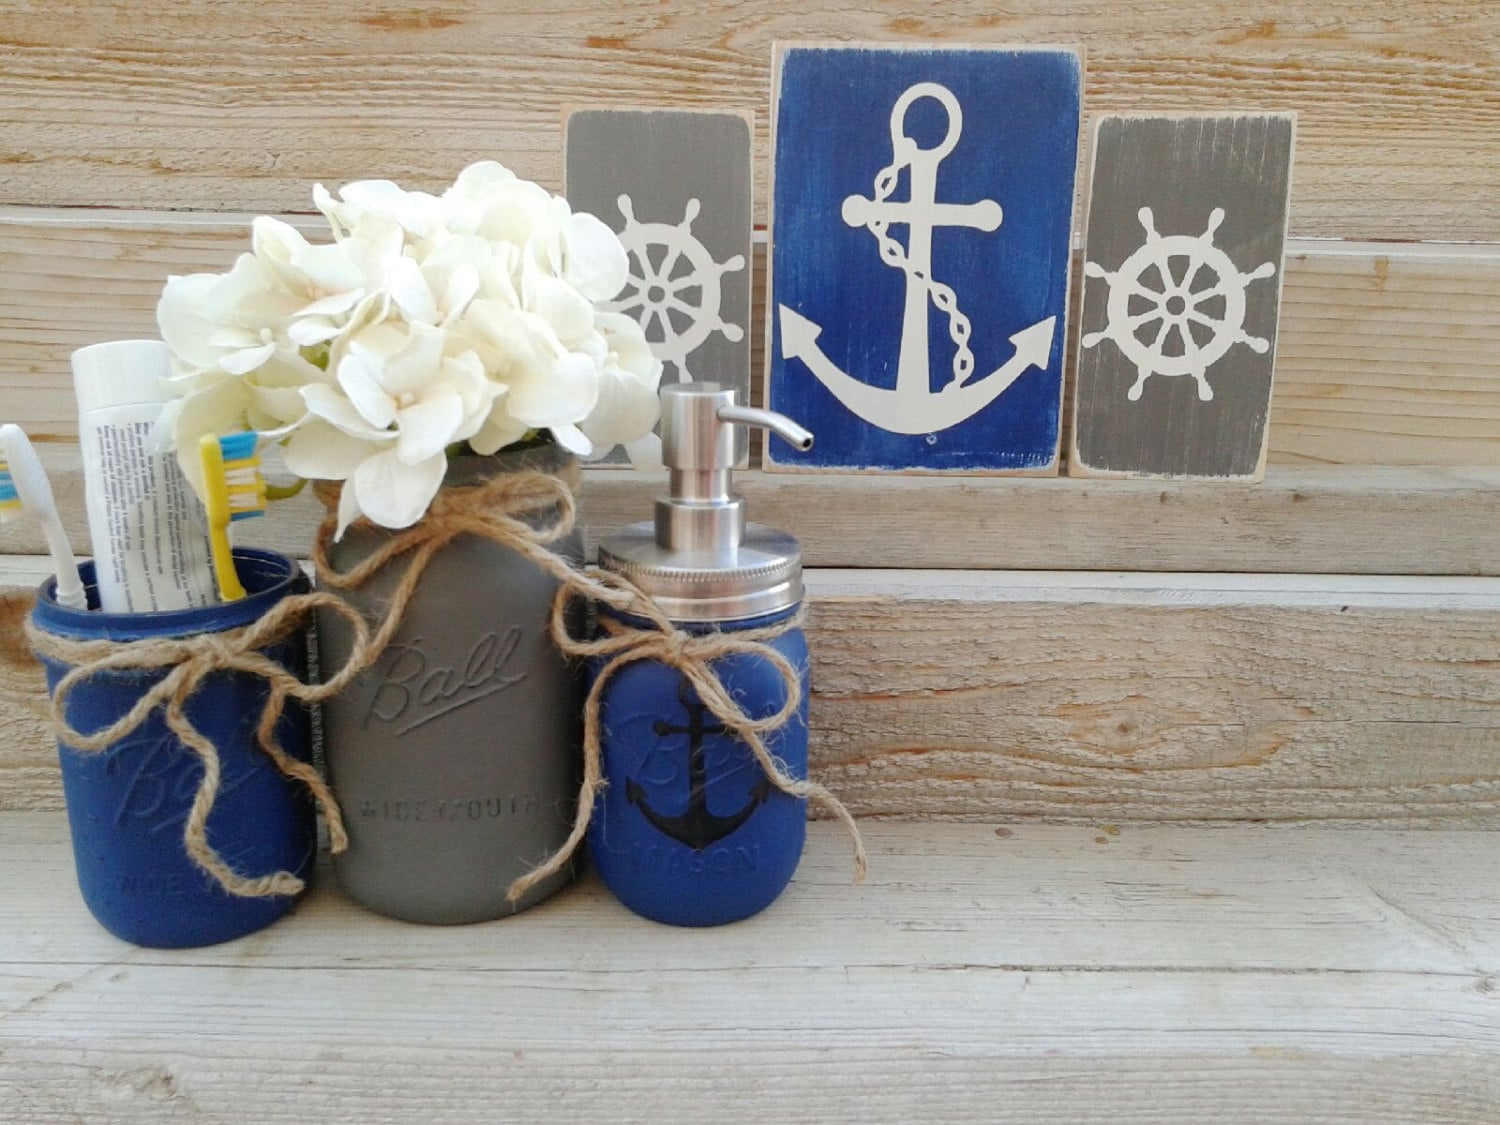 Anchor Decor Rustic Nautical Bathroom Decor Anchor Bathroom Decor Mason Jars Wood